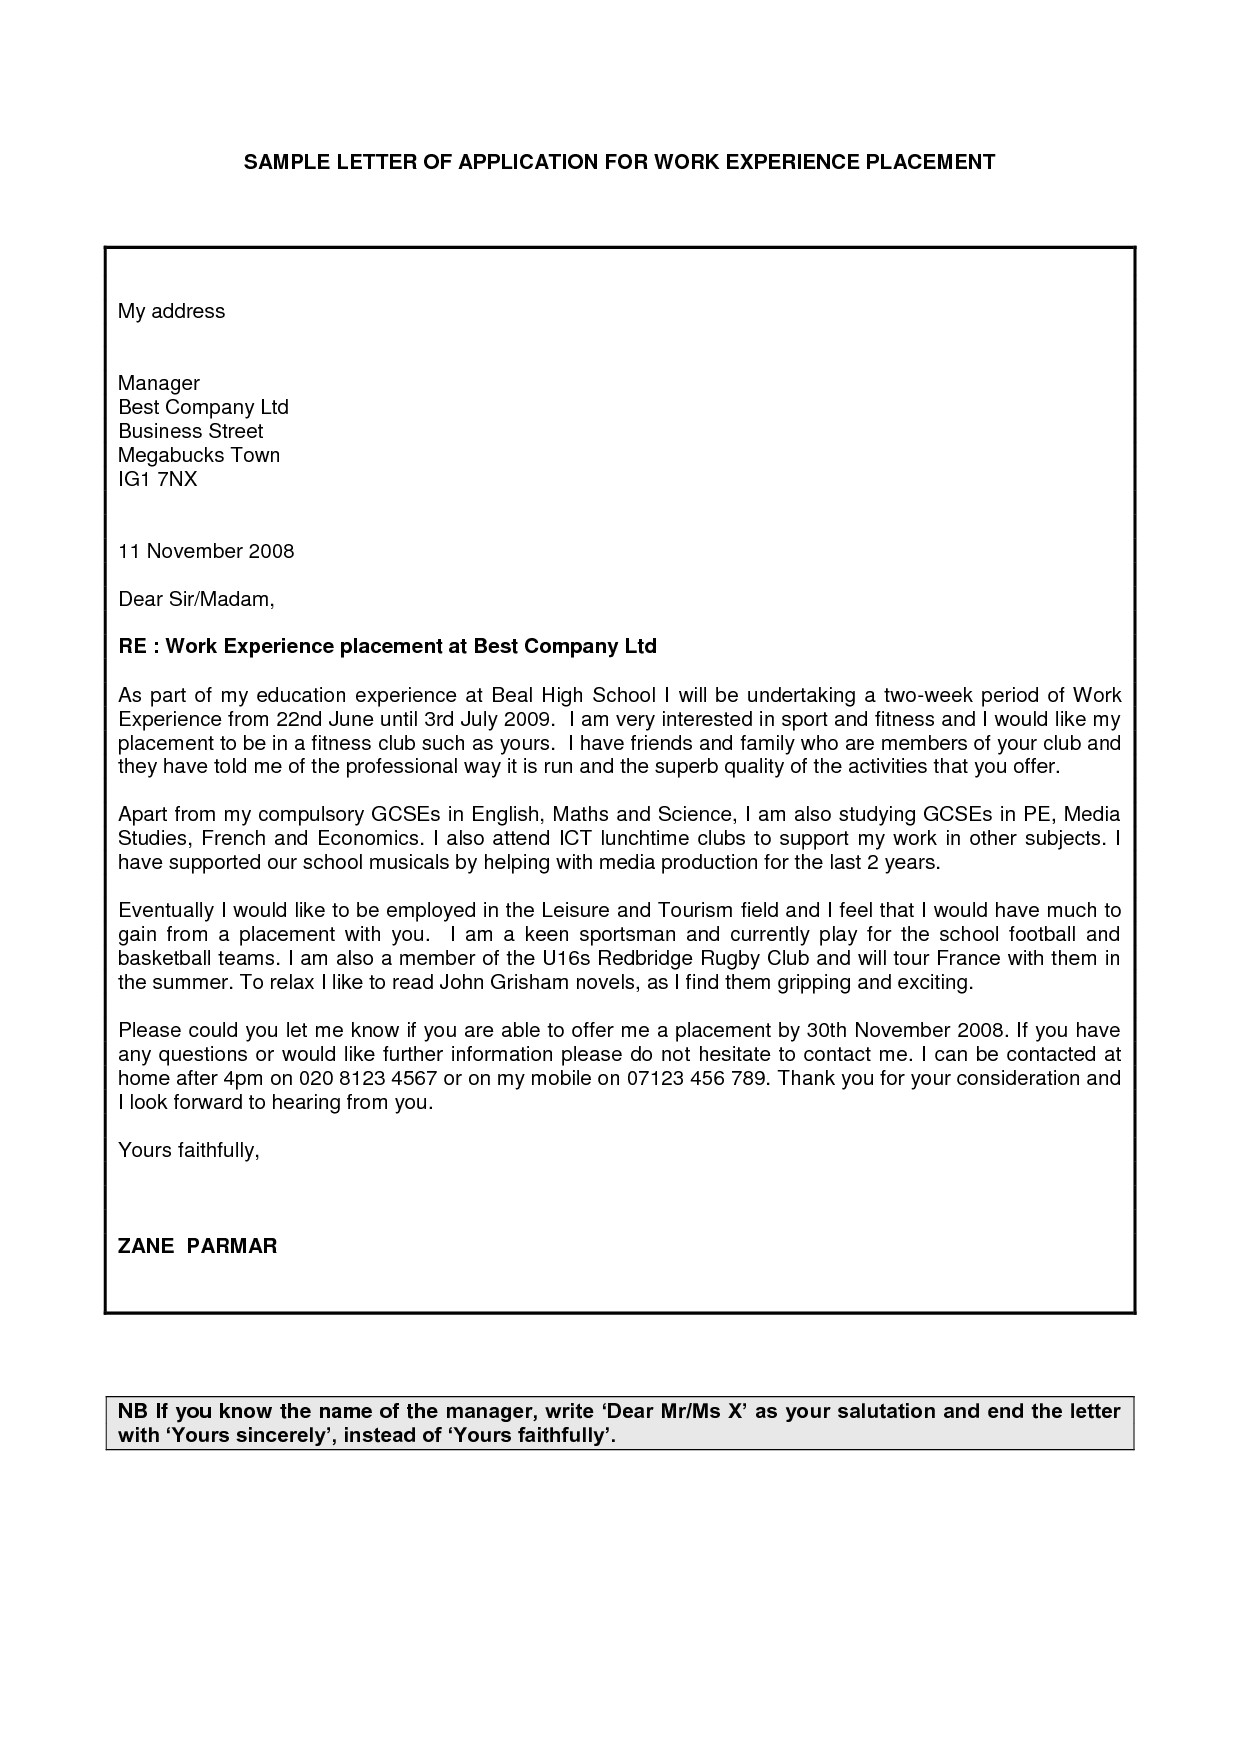 sample request letter for work experience